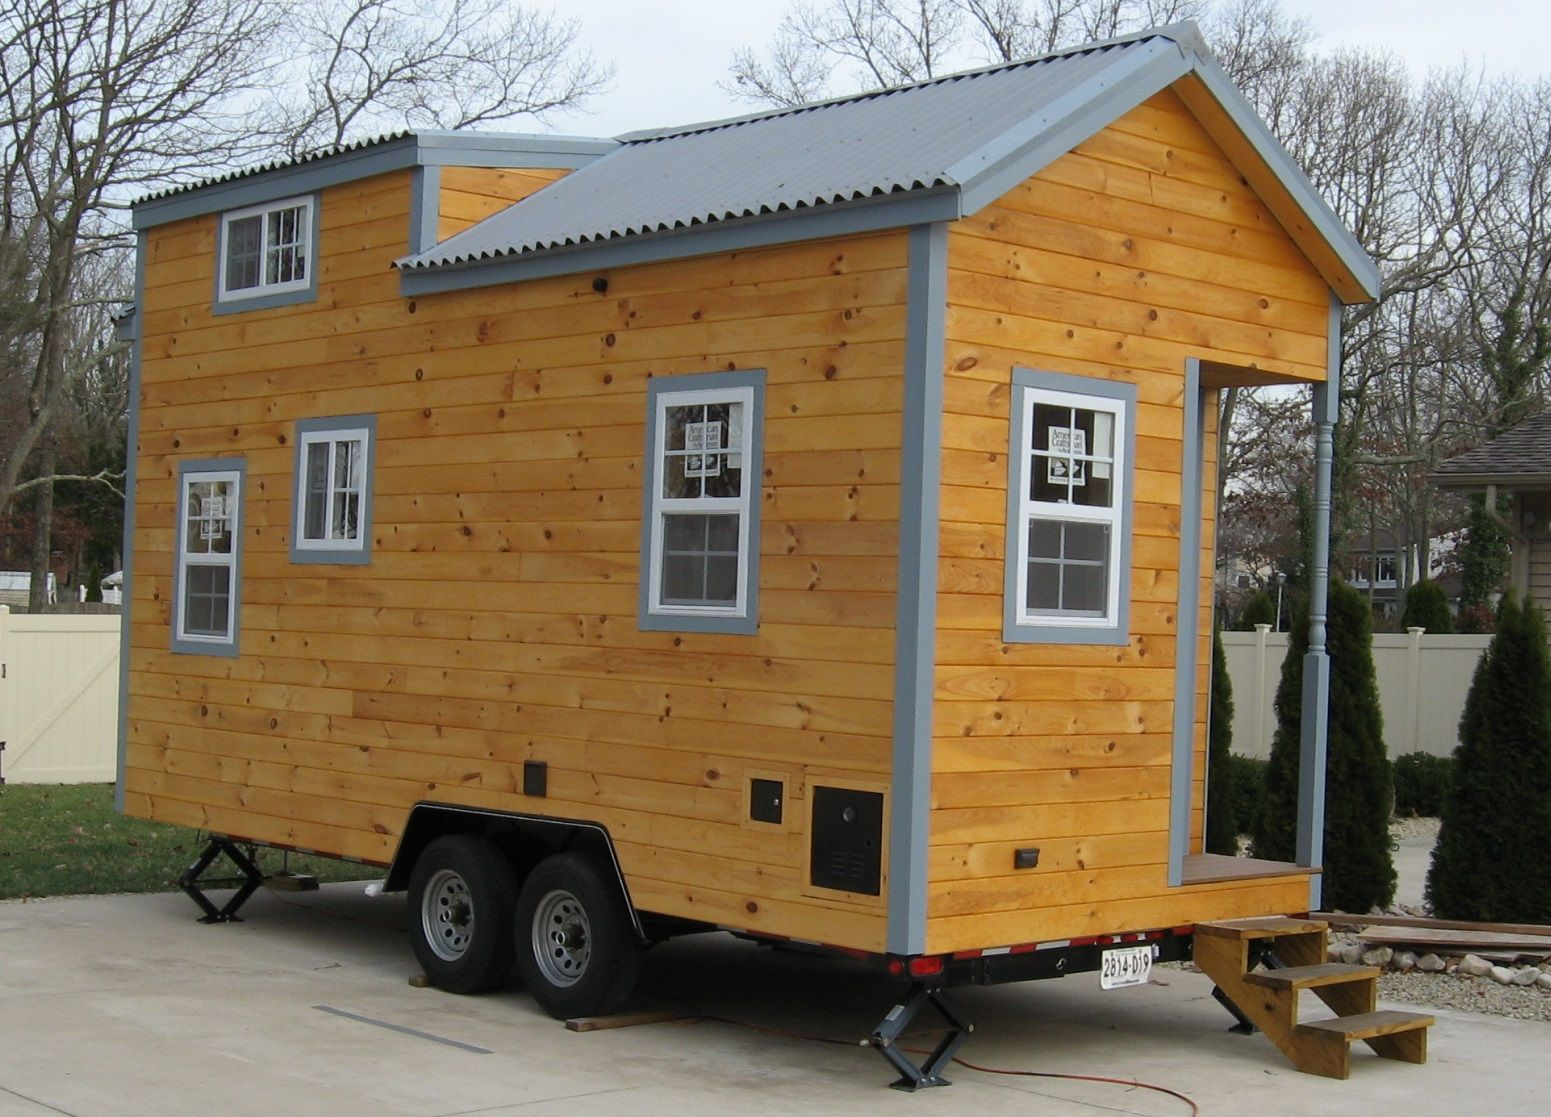 Newly built custom SMART Tiny House on Wheels THOW Its a 238